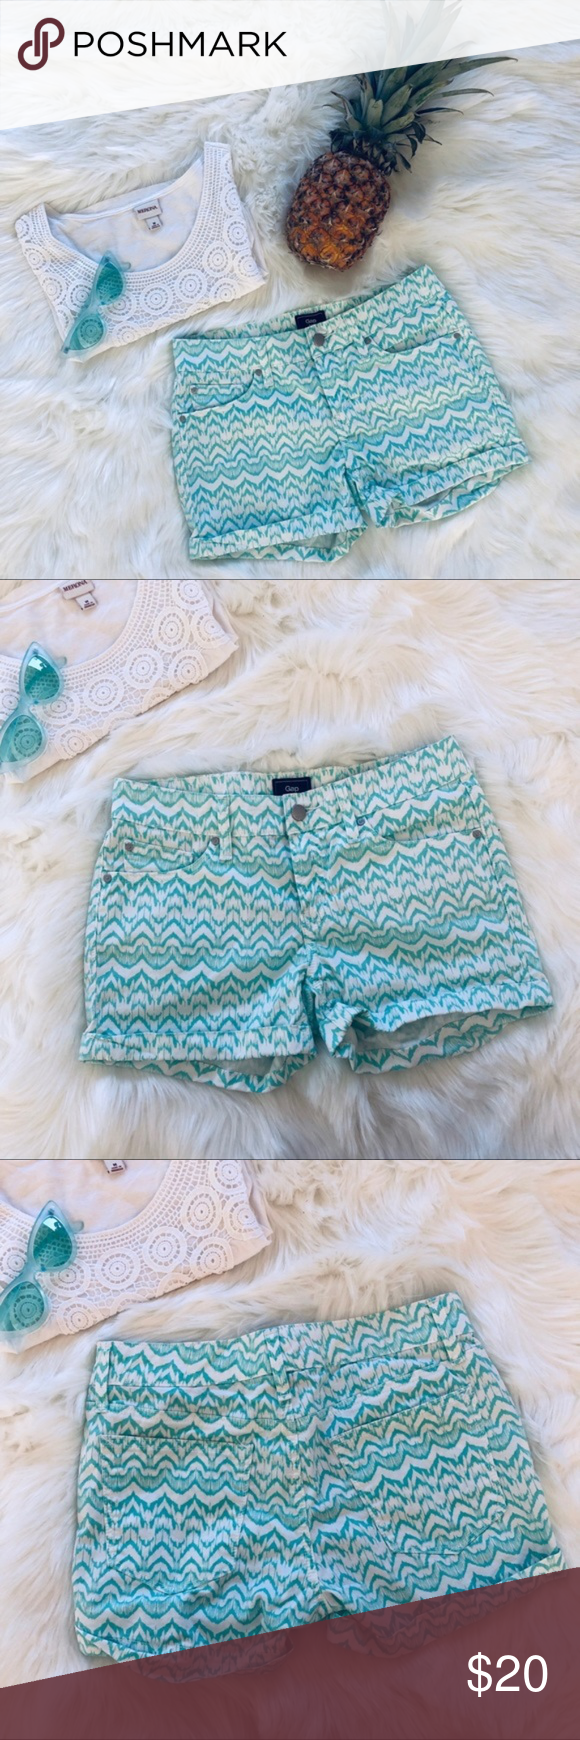 Gap | Mint & White Printed Shorts Spring into warm weather with these v cute statement shorts! Measurement and material/care info are pictured. These are in excellent used condition with no flaws. #002  vacation vacay summer spring warm weather hot weather island hawaii bahamas florida greece italy france tropical carribean cruise GAP Shorts